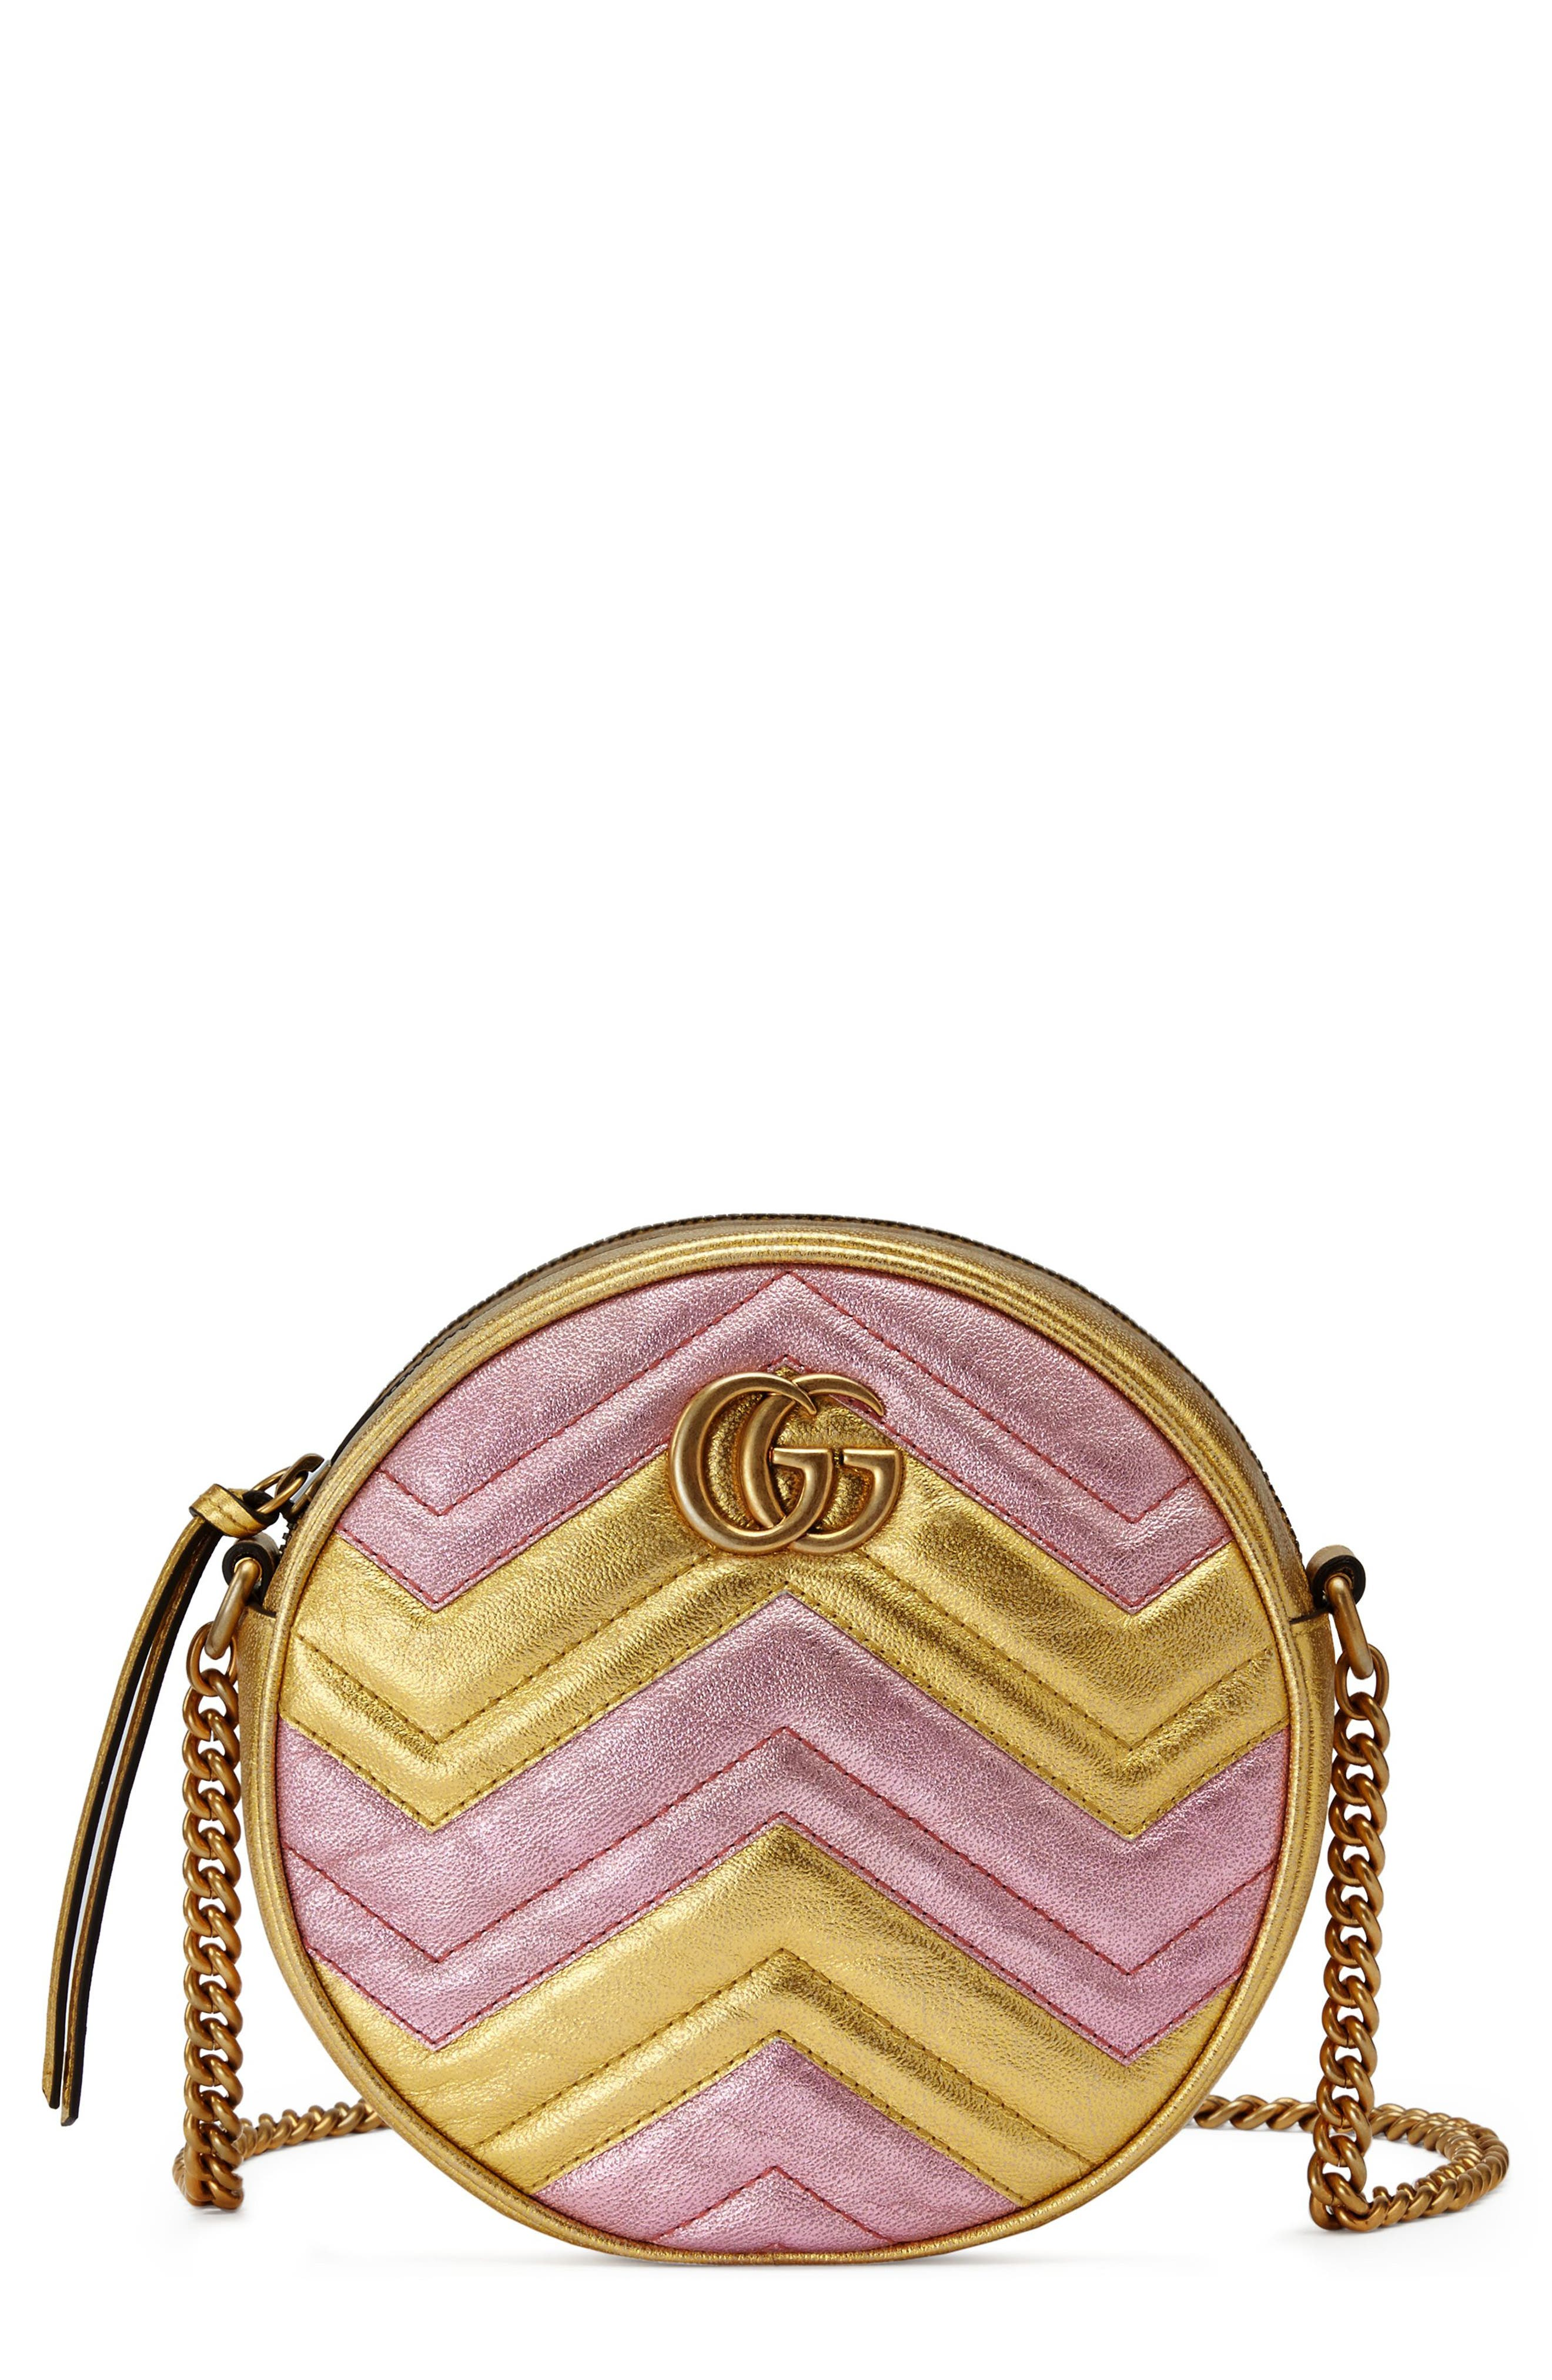 Marmont 2.0 Mini Leather Circle Crossbody Bag,                         Main,                         color, ORO/ ROSA